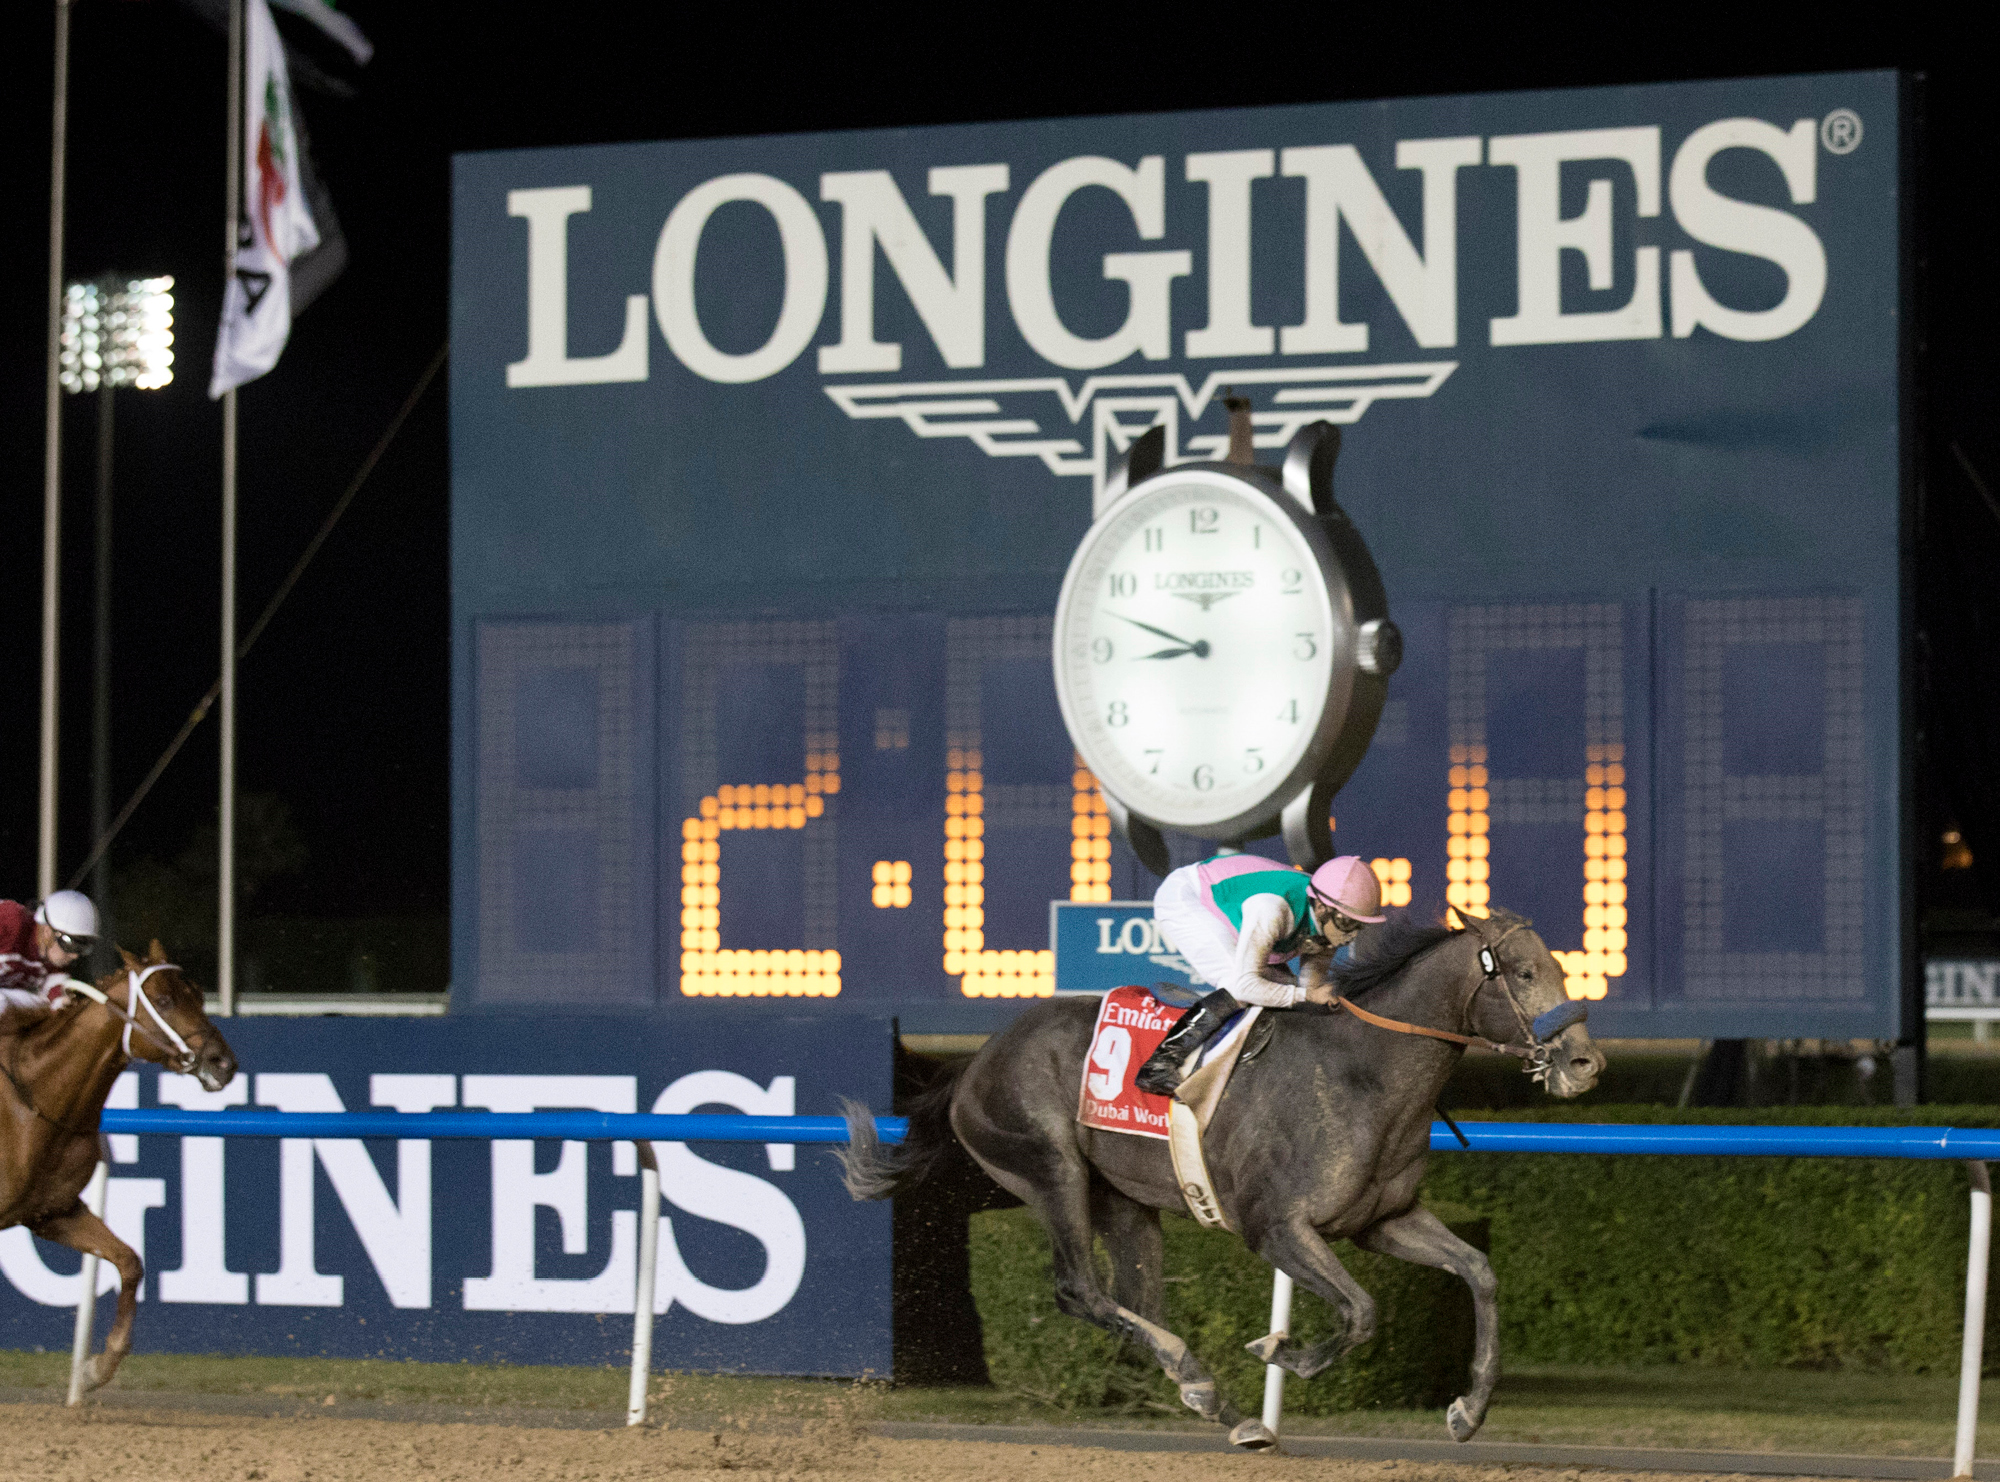 Longines have a long history of involvement in horse racing and training